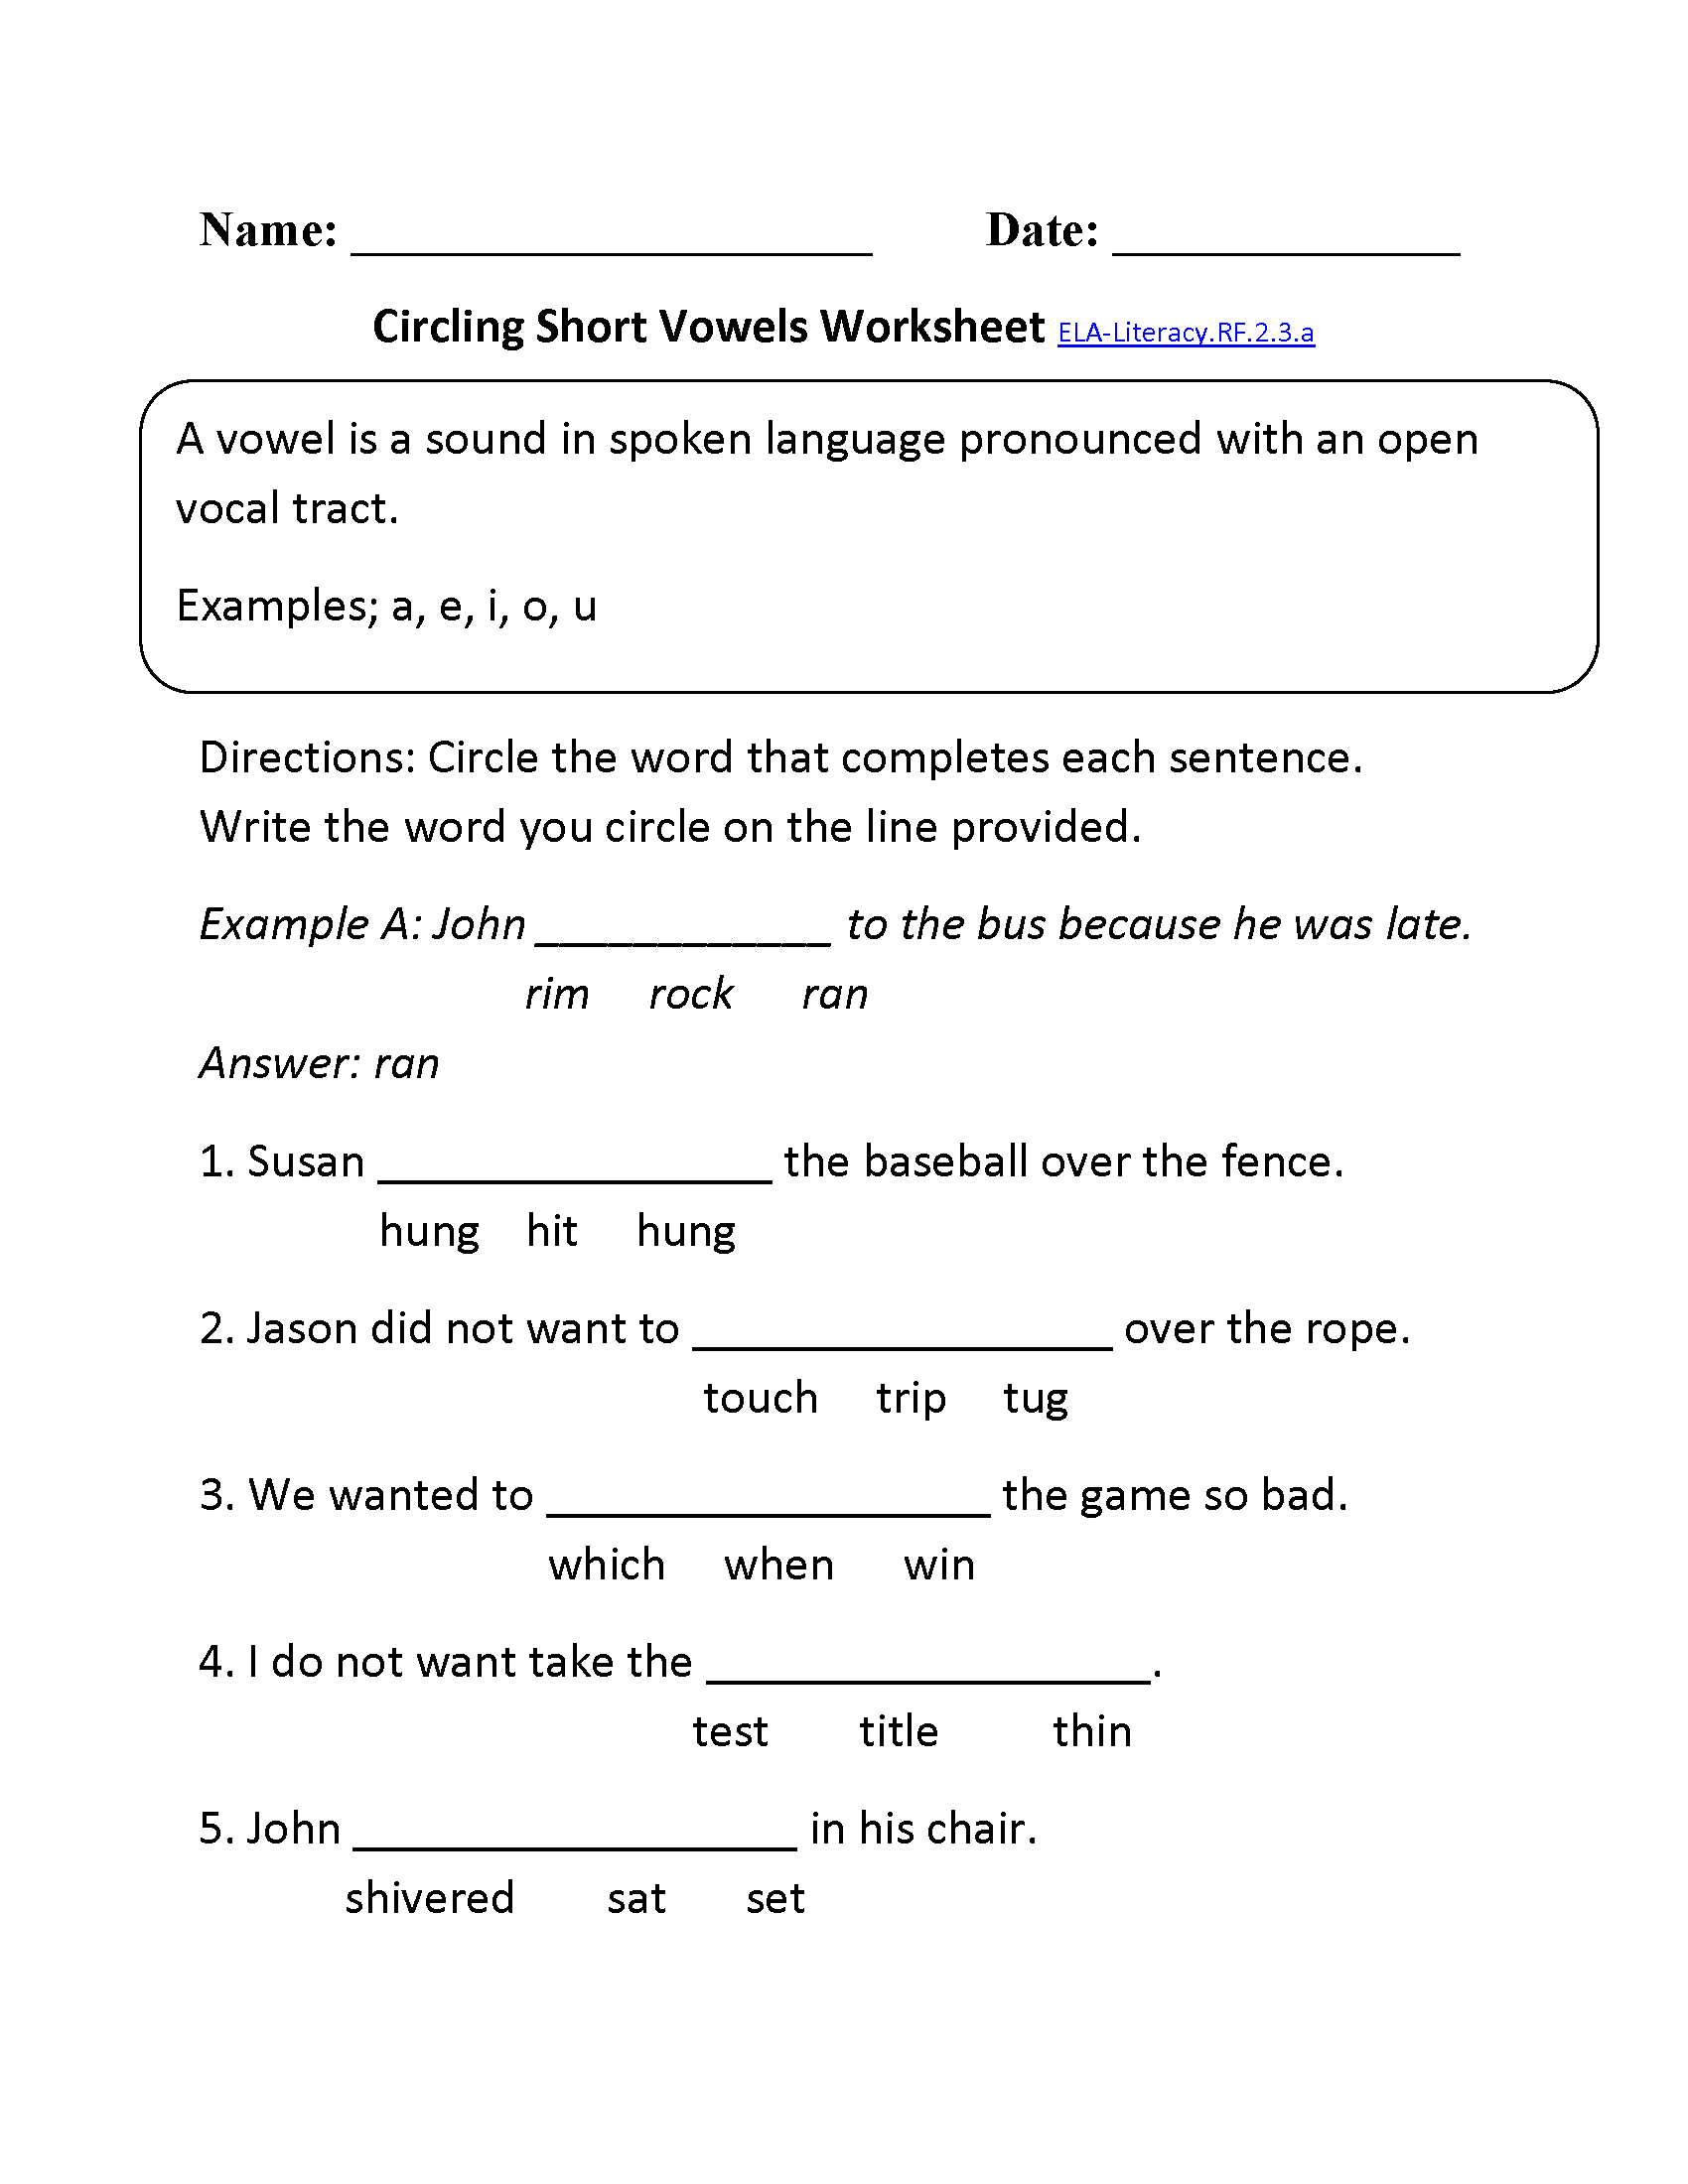 worksheet 4th Grade Ela Worksheets 2nd grade common core reading foundational skills worksheets ela literacy rf 2 3 a skills